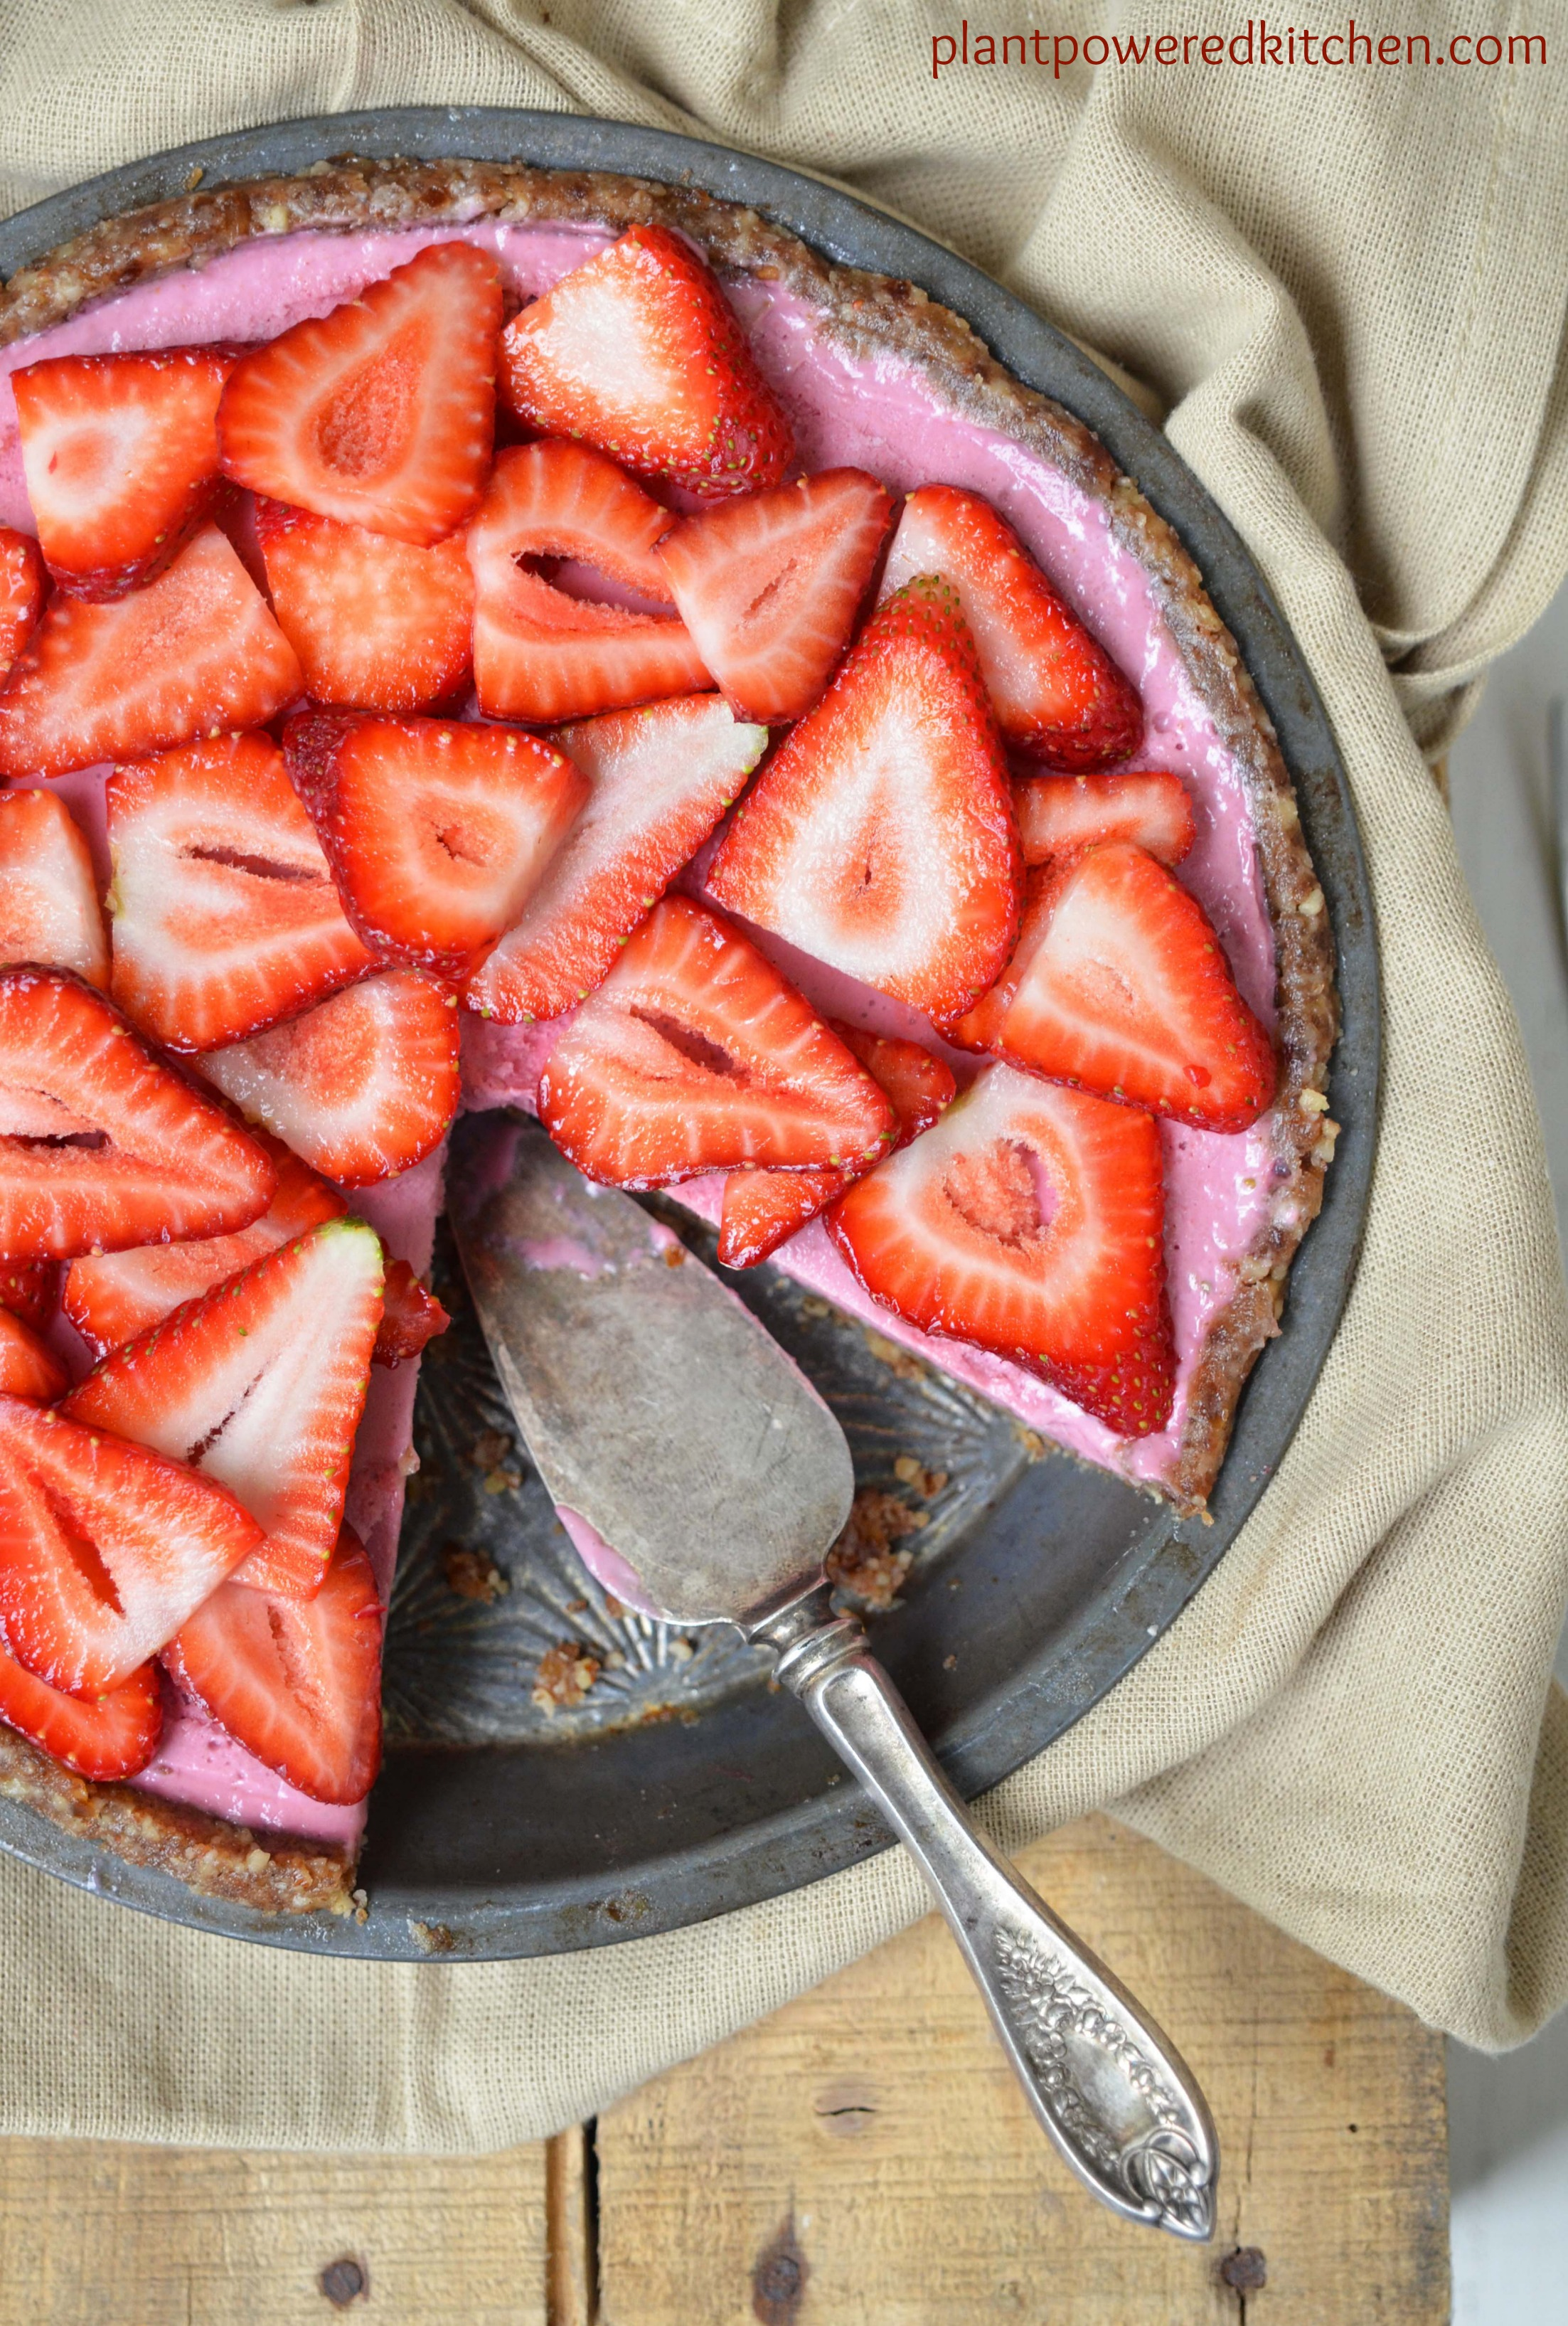 Strawberry season is finally here! To celebrate the season, I have complied an amazing vegan strawberry recipe round-up! Take advantage of strawberry season with these Vegan Strawberry Recipes.